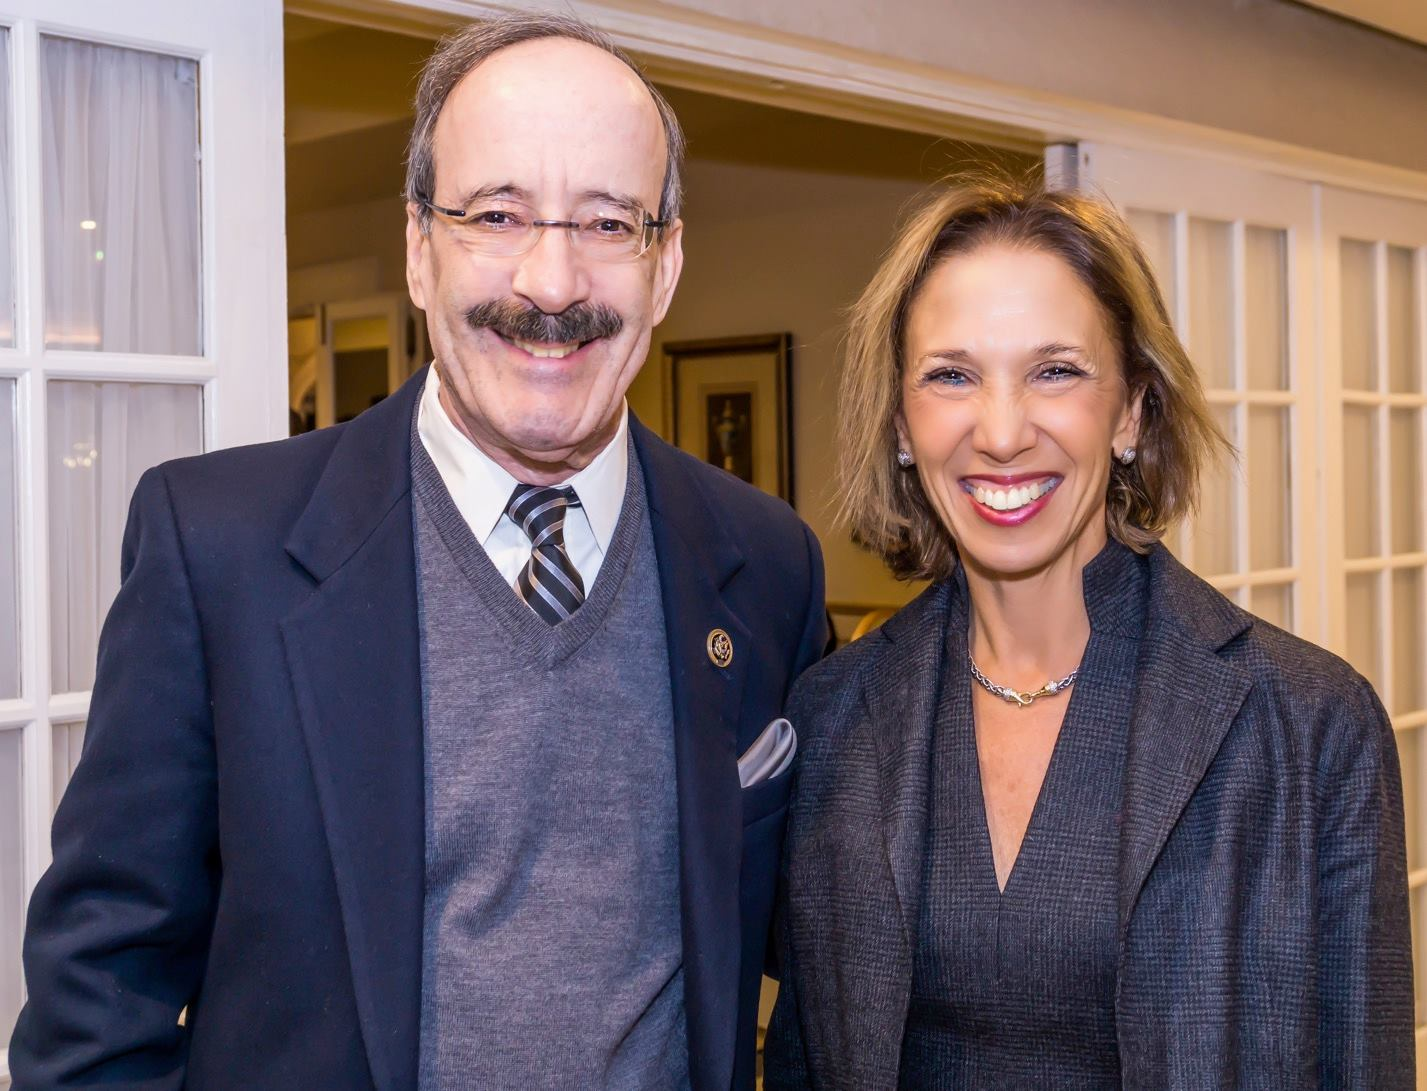 Amy and Congressman Eliot Engel at the Westchester Day School Dinner. The picture is courtesy of Michael Turek.